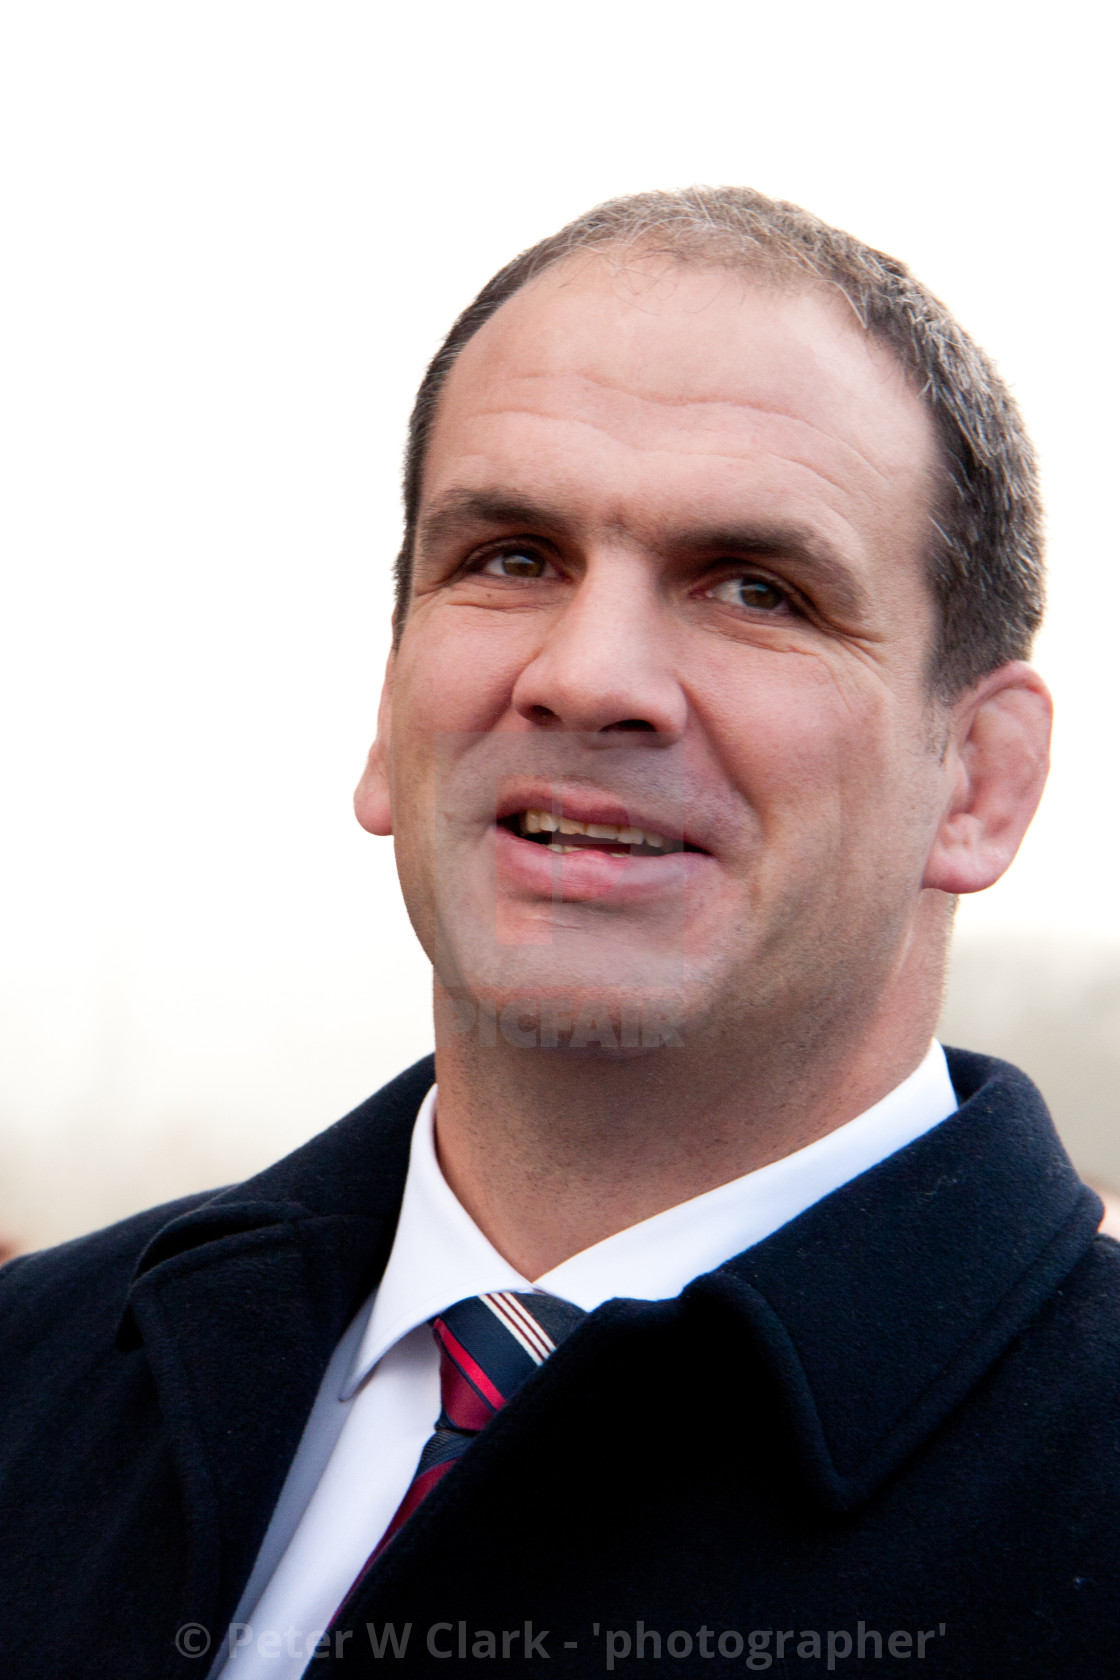 """Inspirational' Ex Captain of England Rugby Union Team Martin Johnson CBE. Photographed 19/11/2011"" stock image"